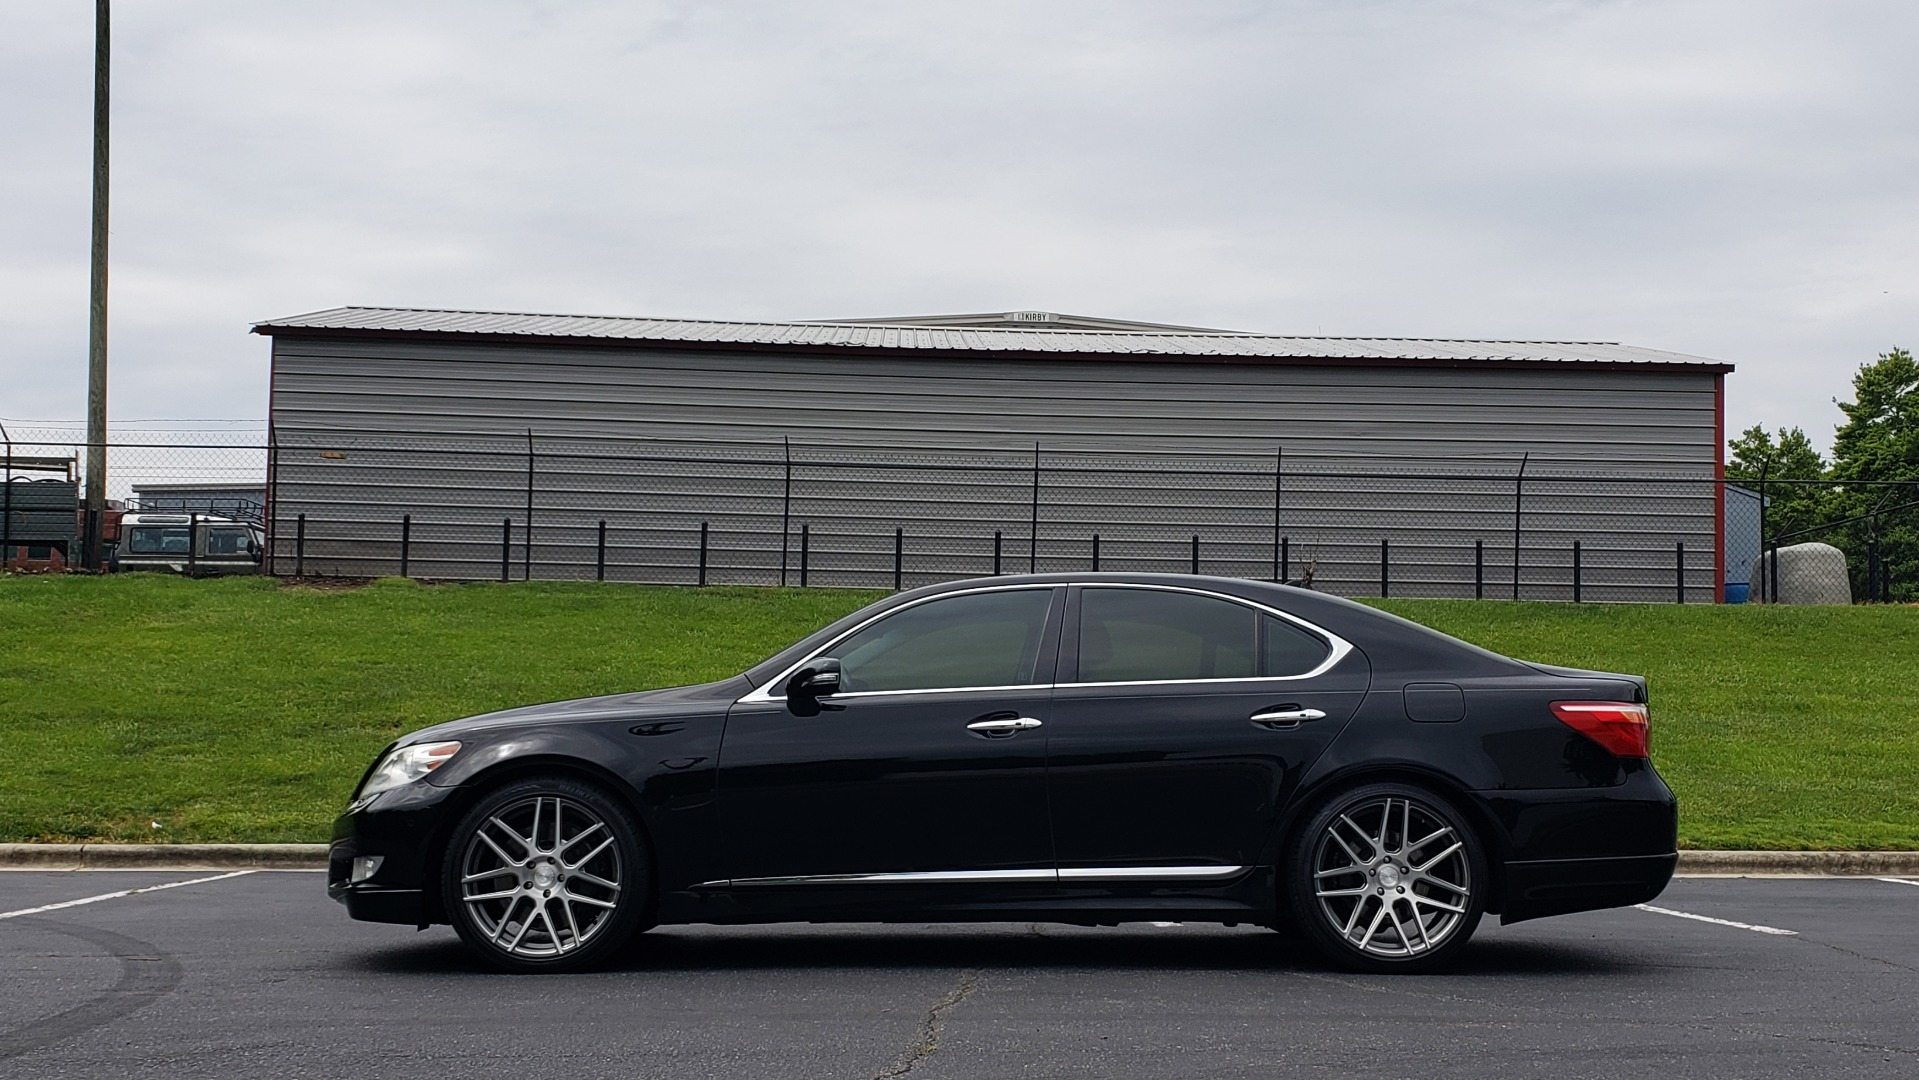 Used 2012 Lexus LS 460 COMFORT W/SPORT / VENT SEATS / NAV / MARK LEV SND / SUNROOF for sale Sold at Formula Imports in Charlotte NC 28227 3